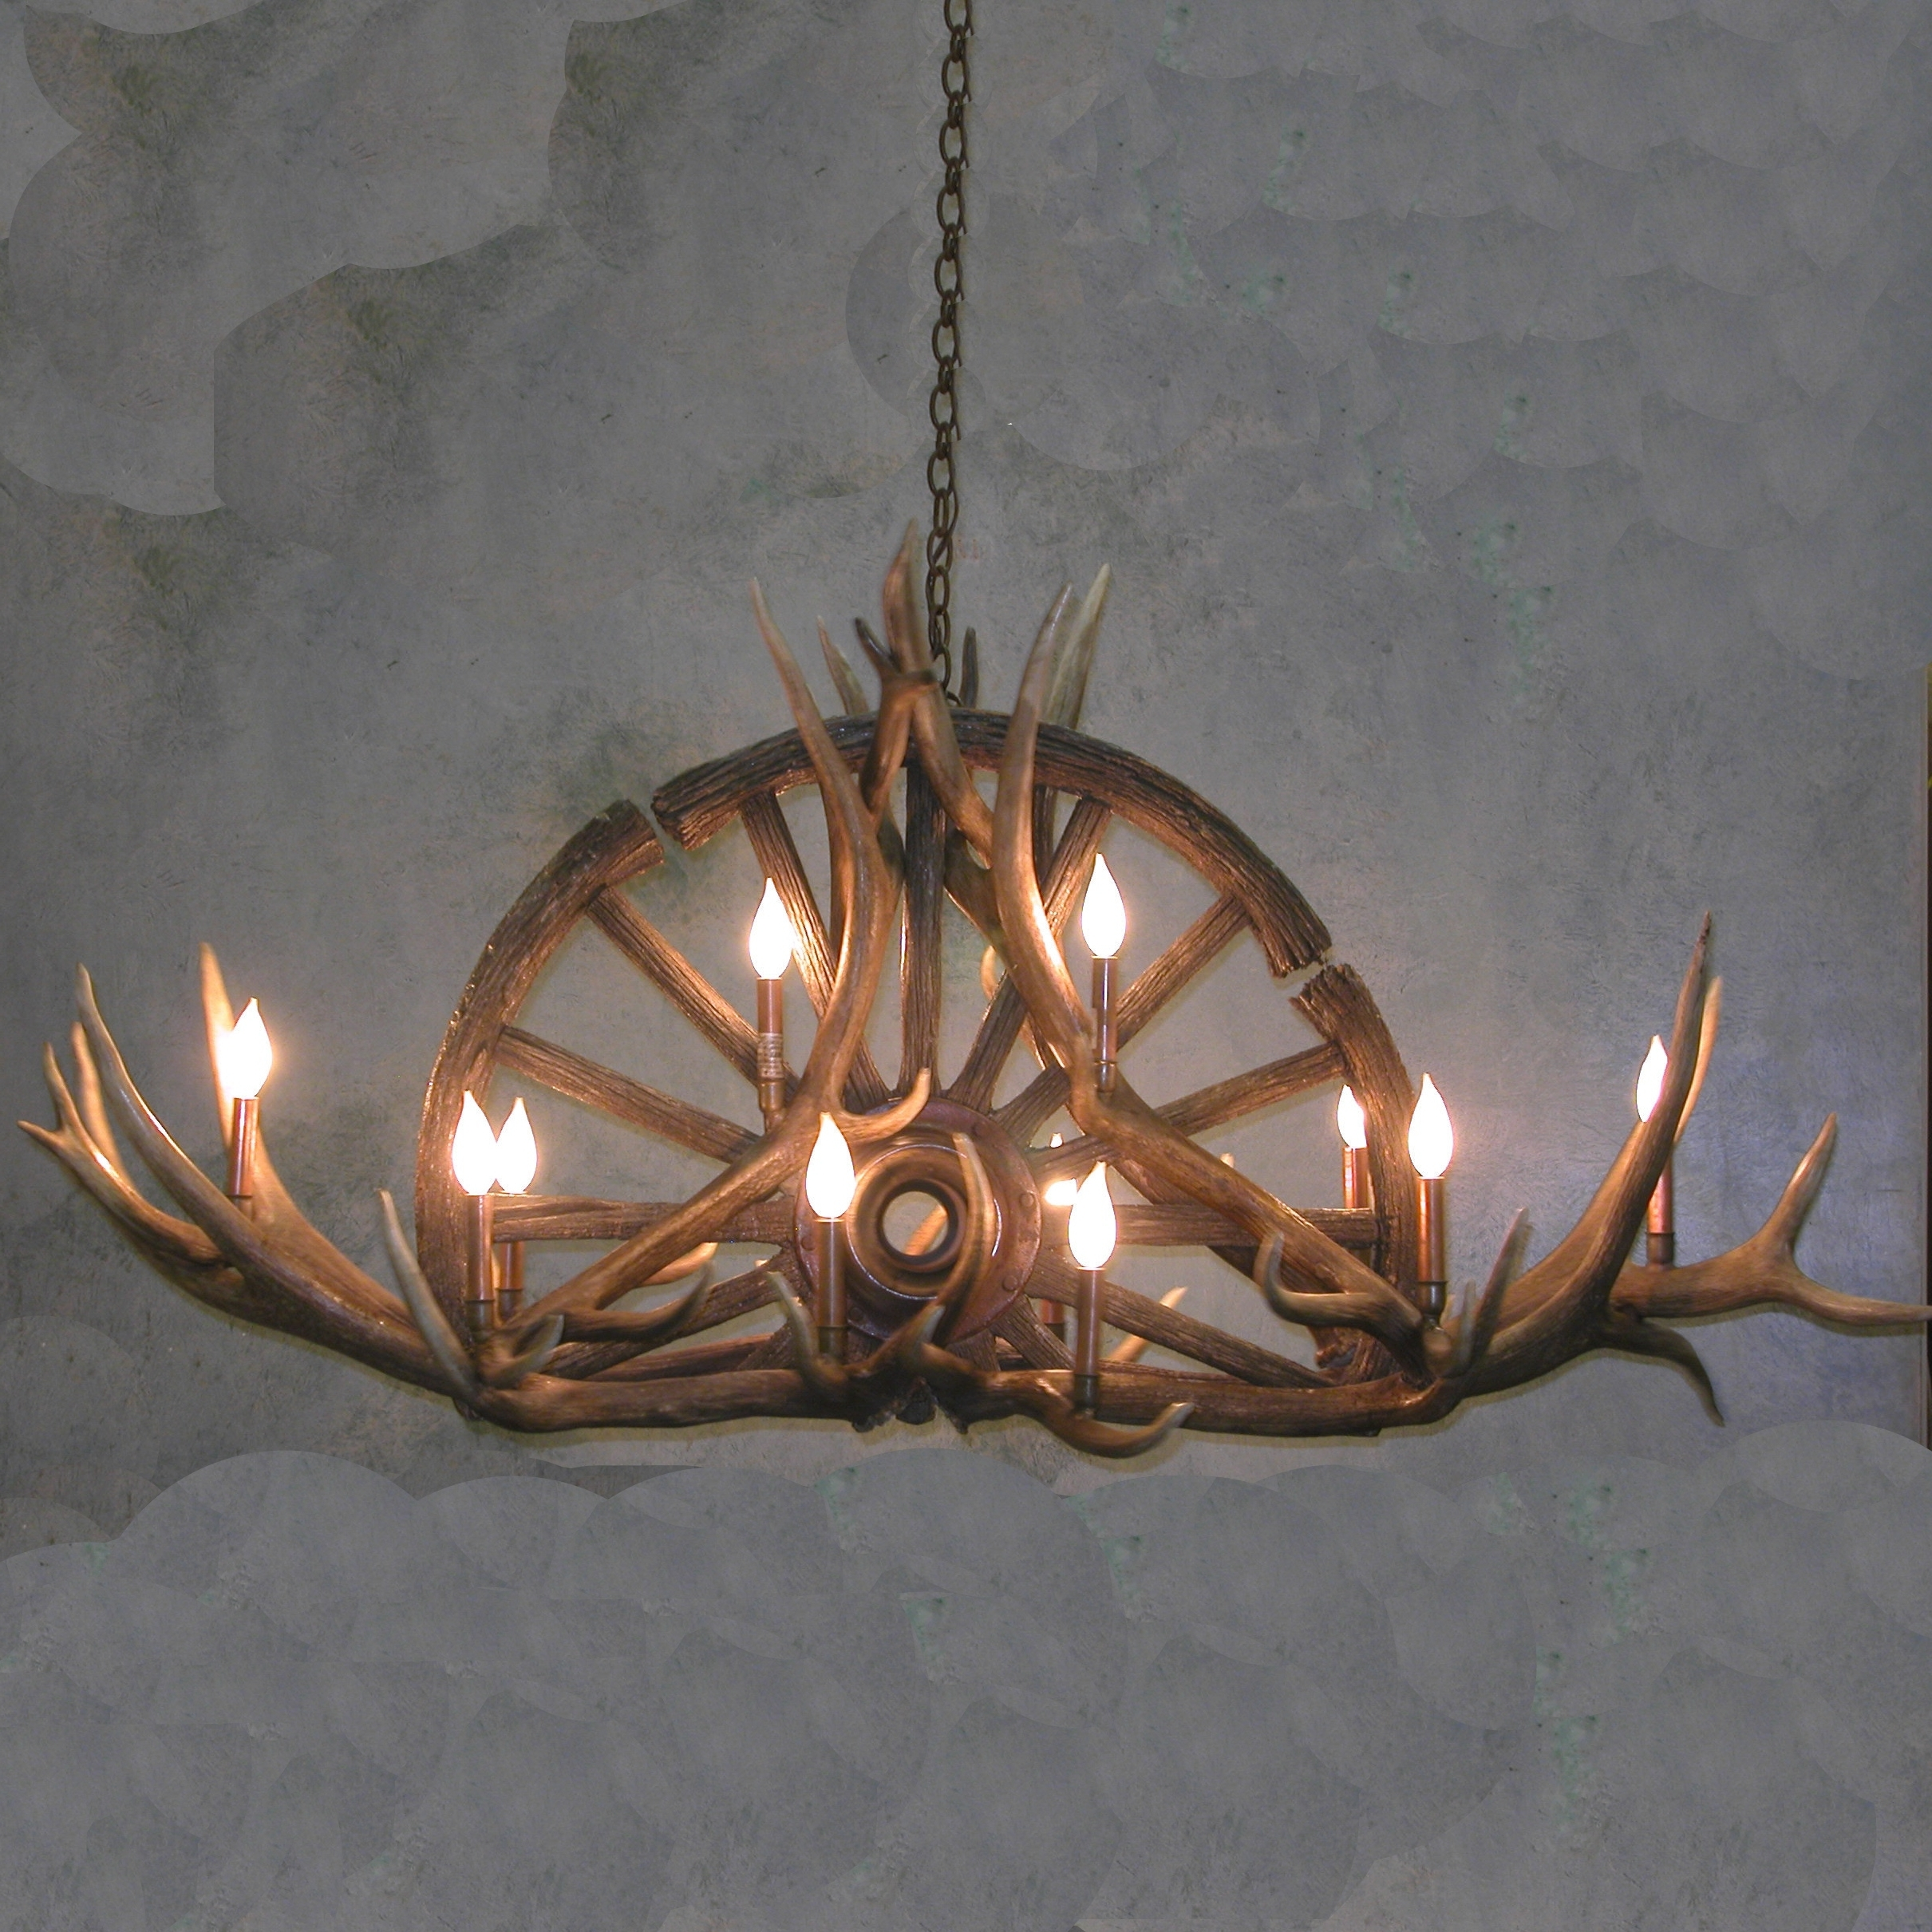 Widely Used Large Antler Chandelier Within Wagon Wheel Antler Chandelier (View 10 of 20)